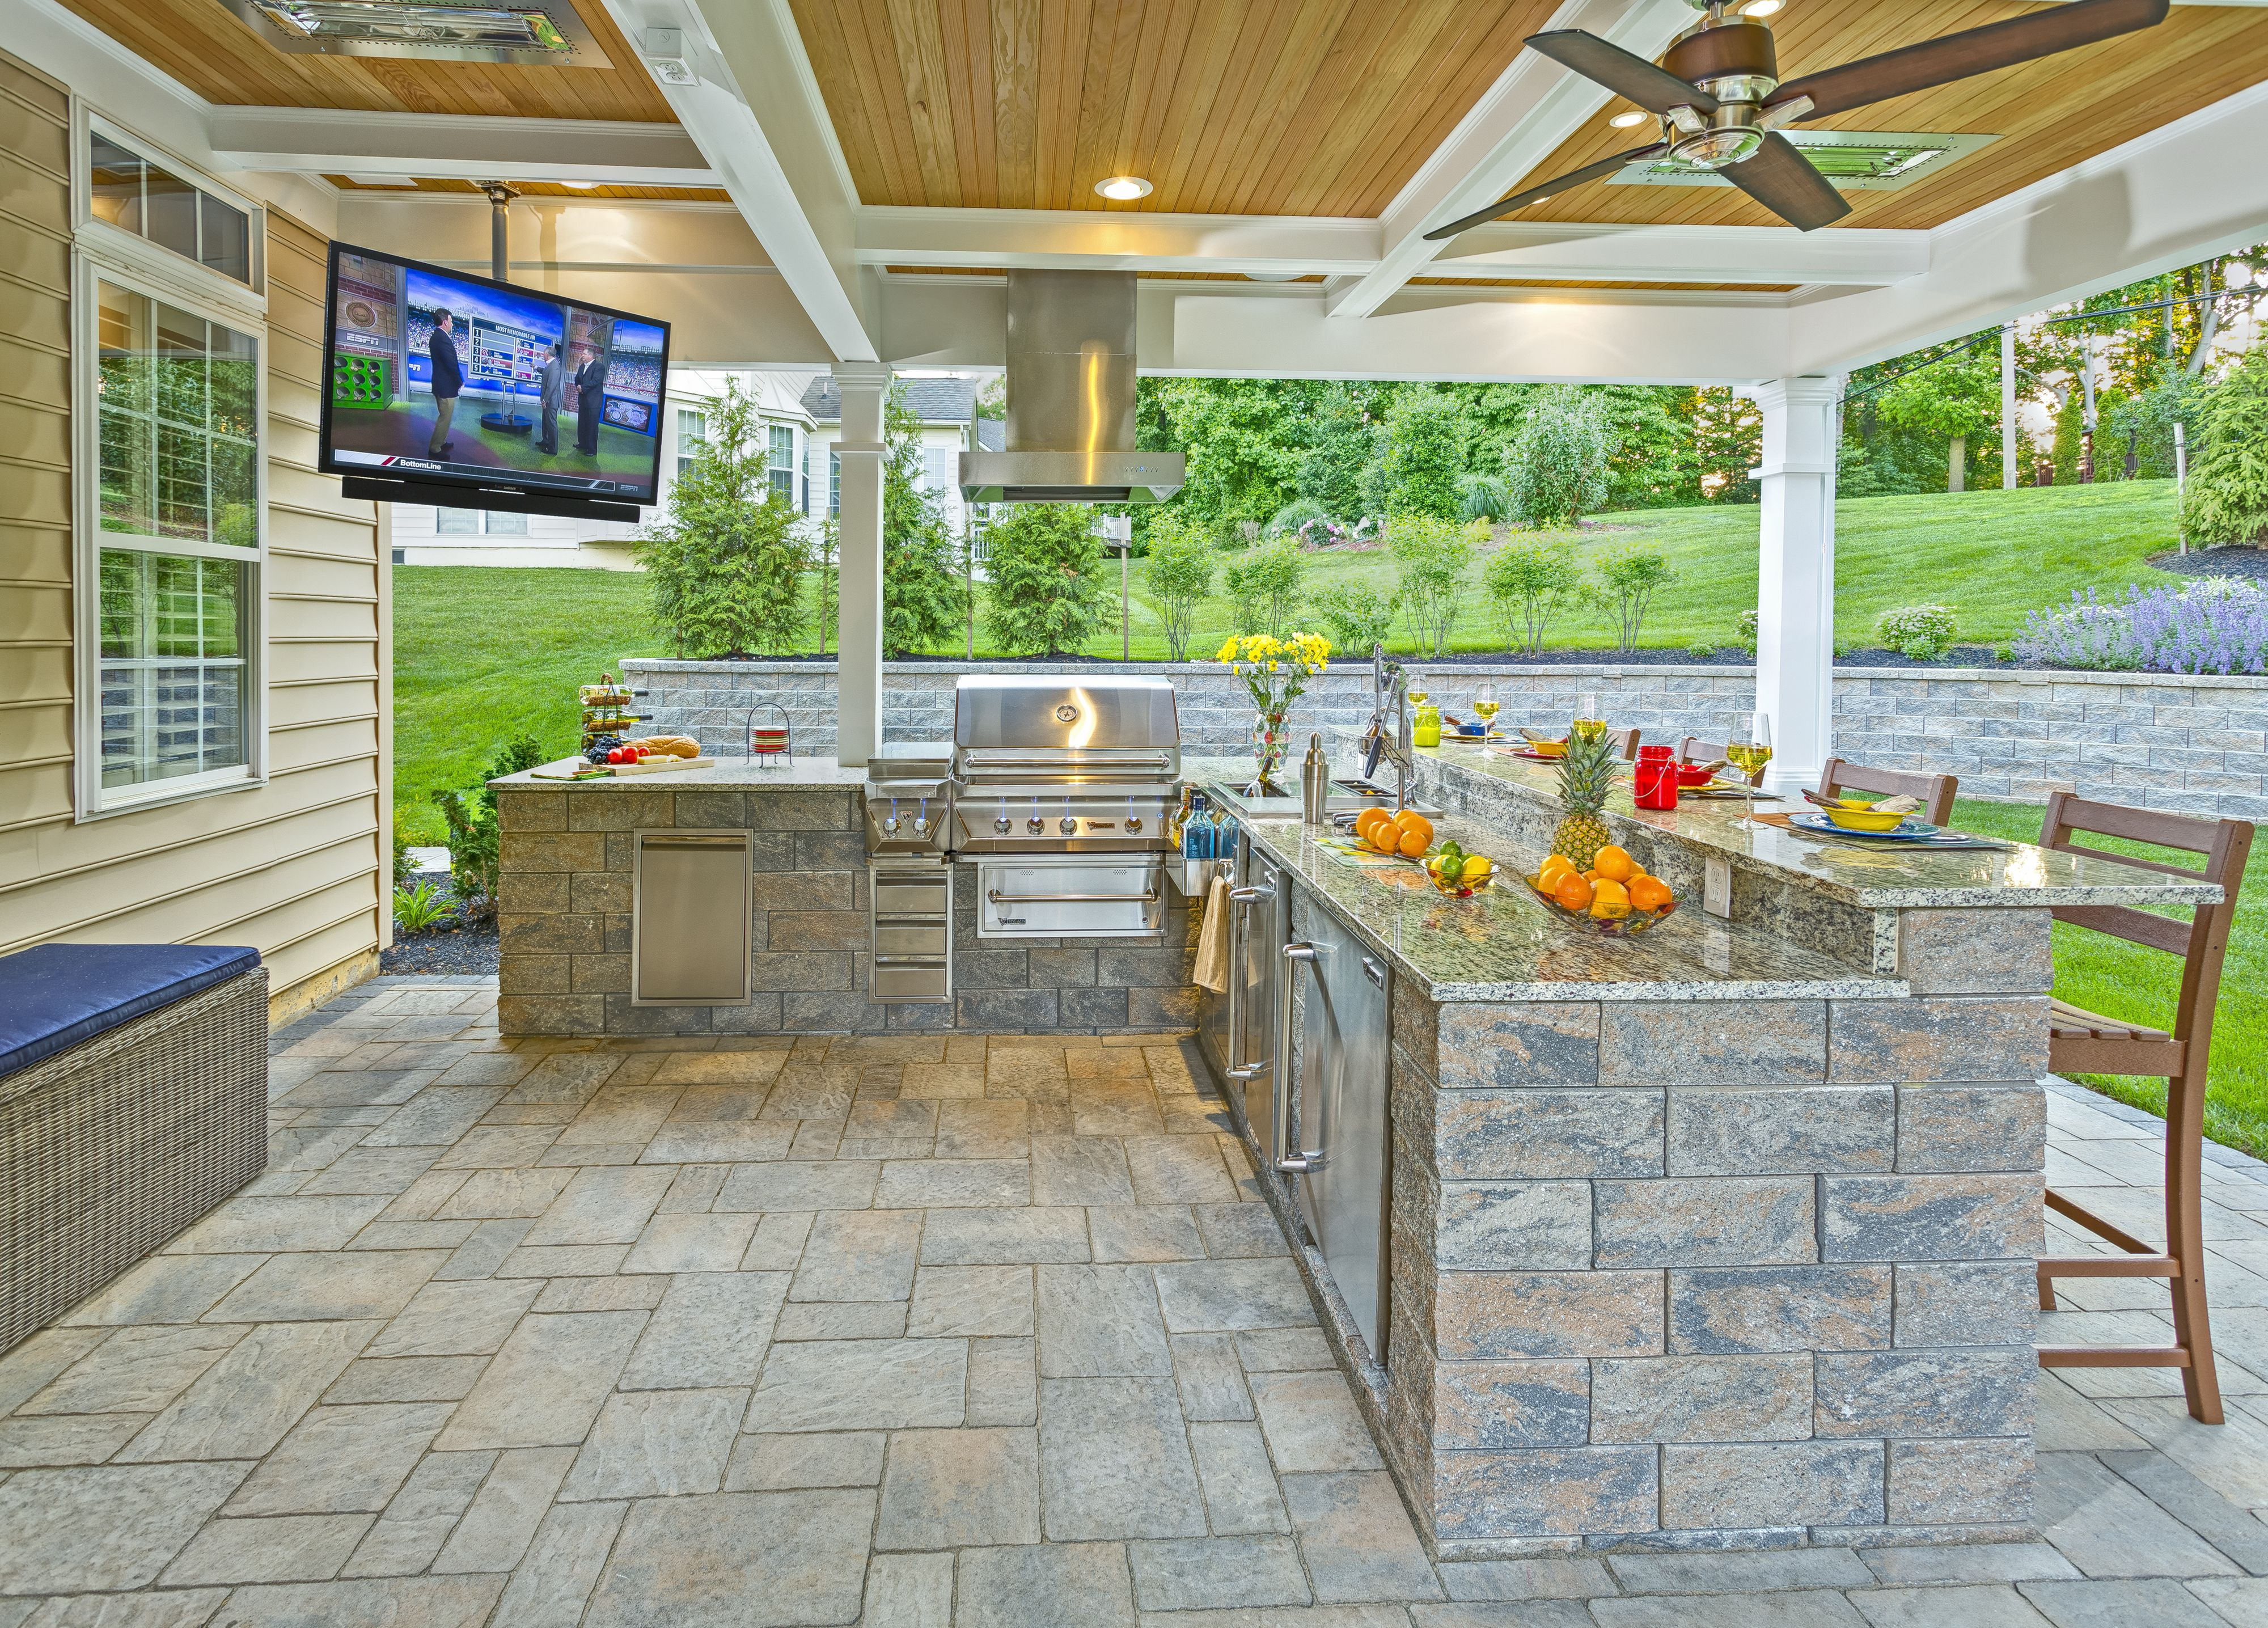 outdoor kitchen outdoor kitchen design outdoor living cool kitchens on outdoor kitchen natural id=41925